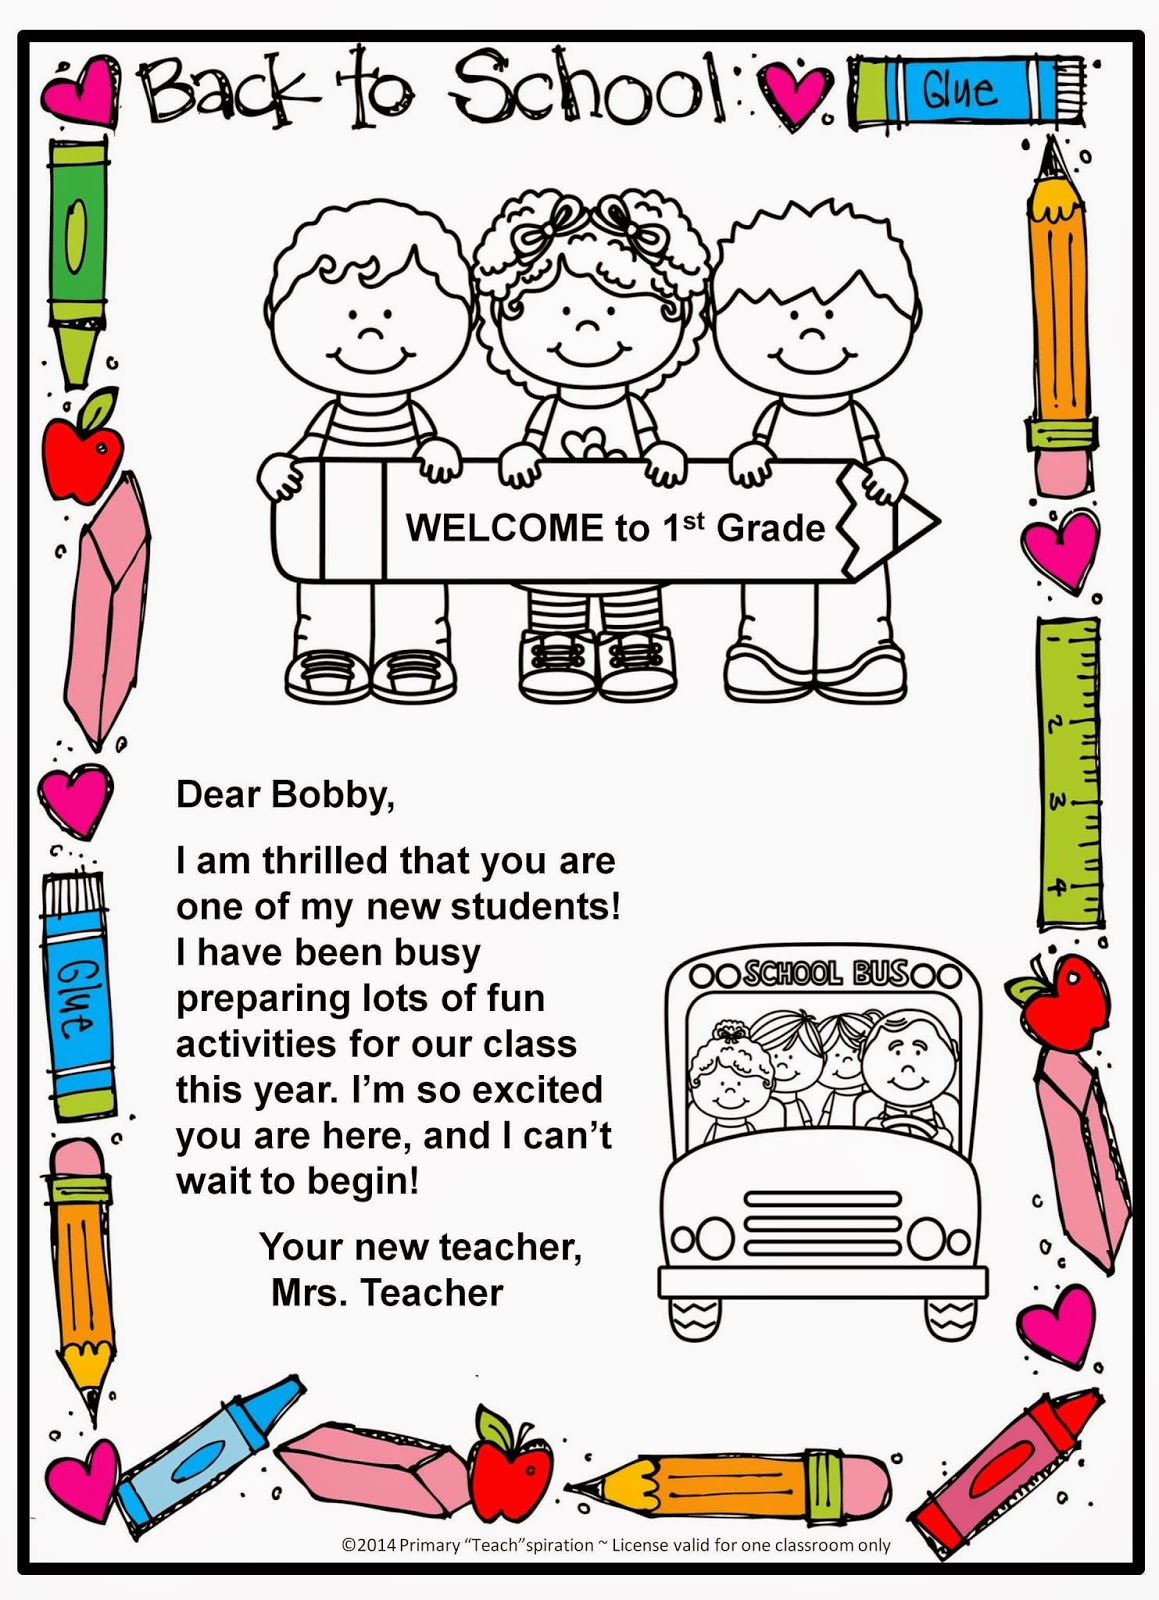 Classroom Freebies Too: Back to School Welcome Letter and Postcard